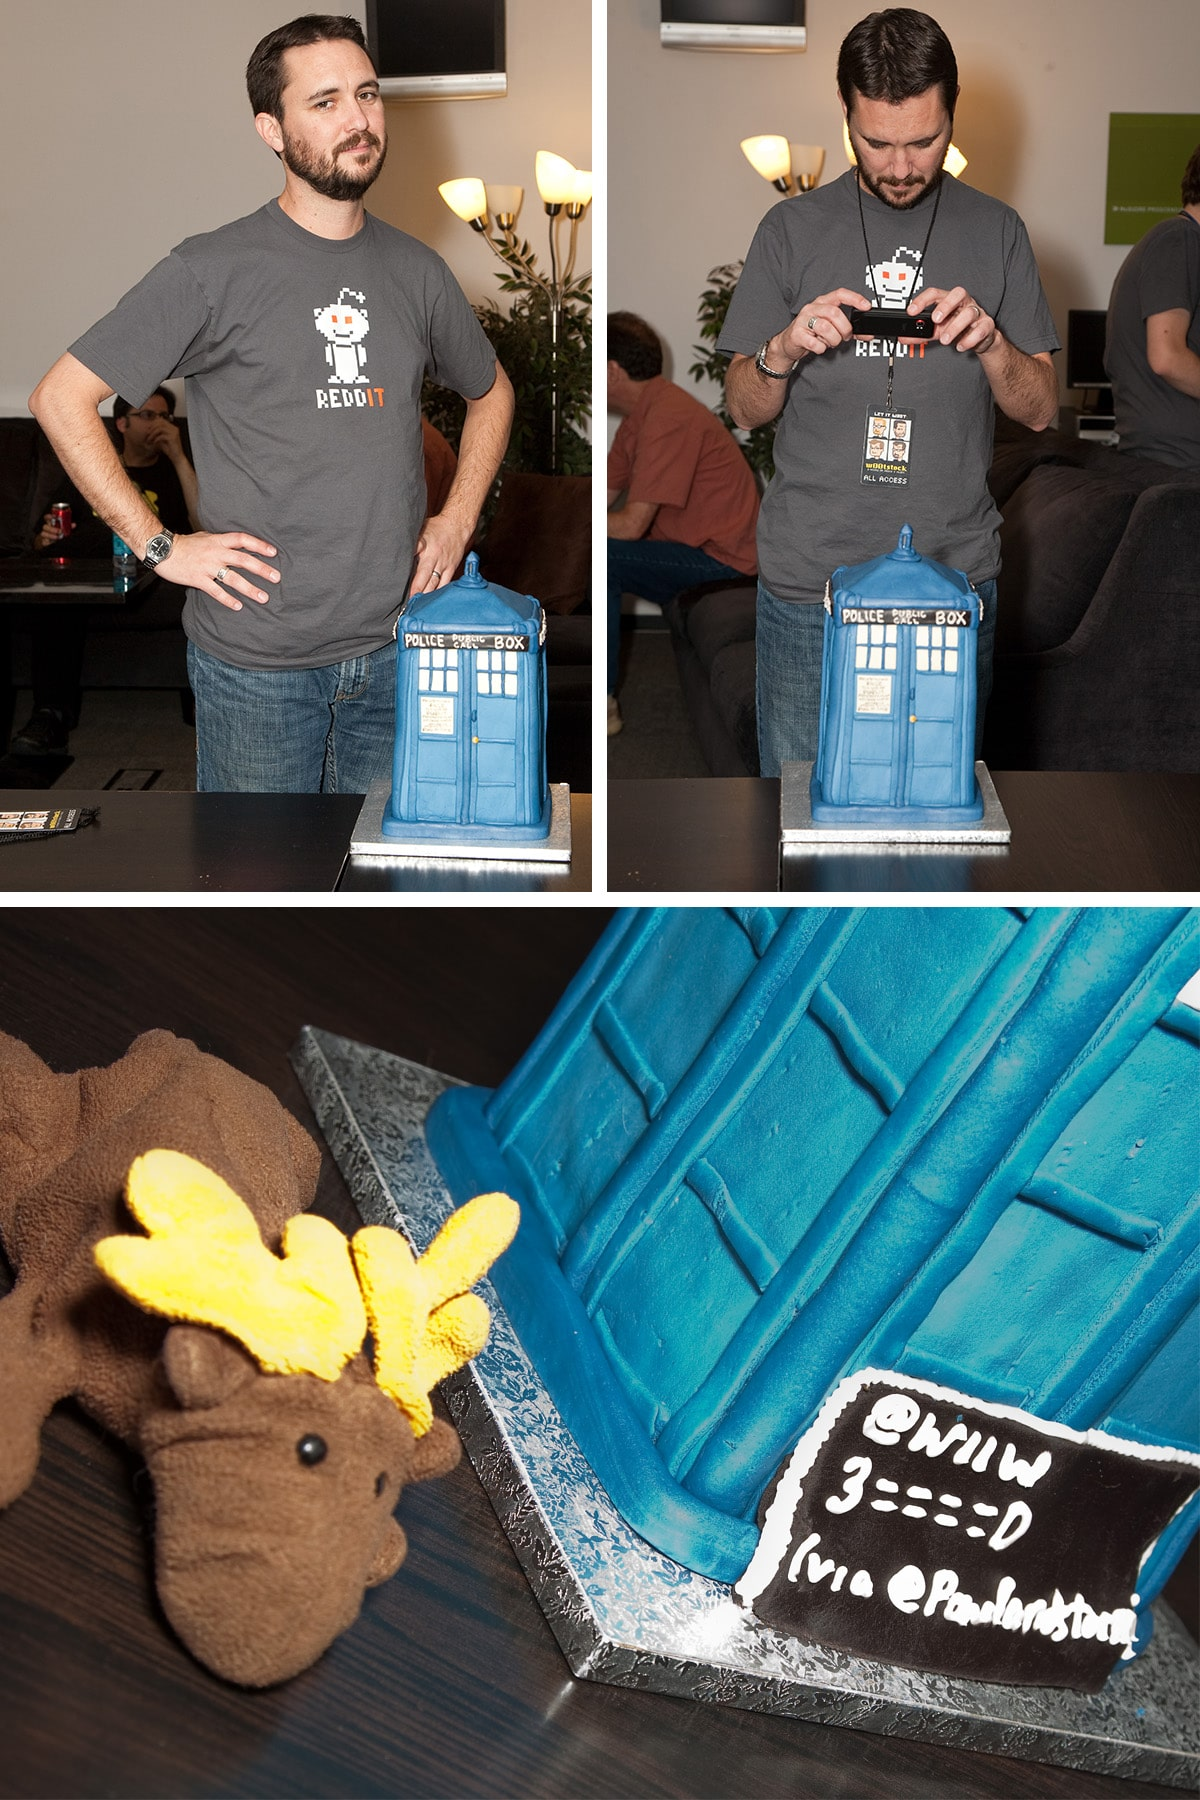 A compilation image of Wil Wheaton with the TARDIS cake.